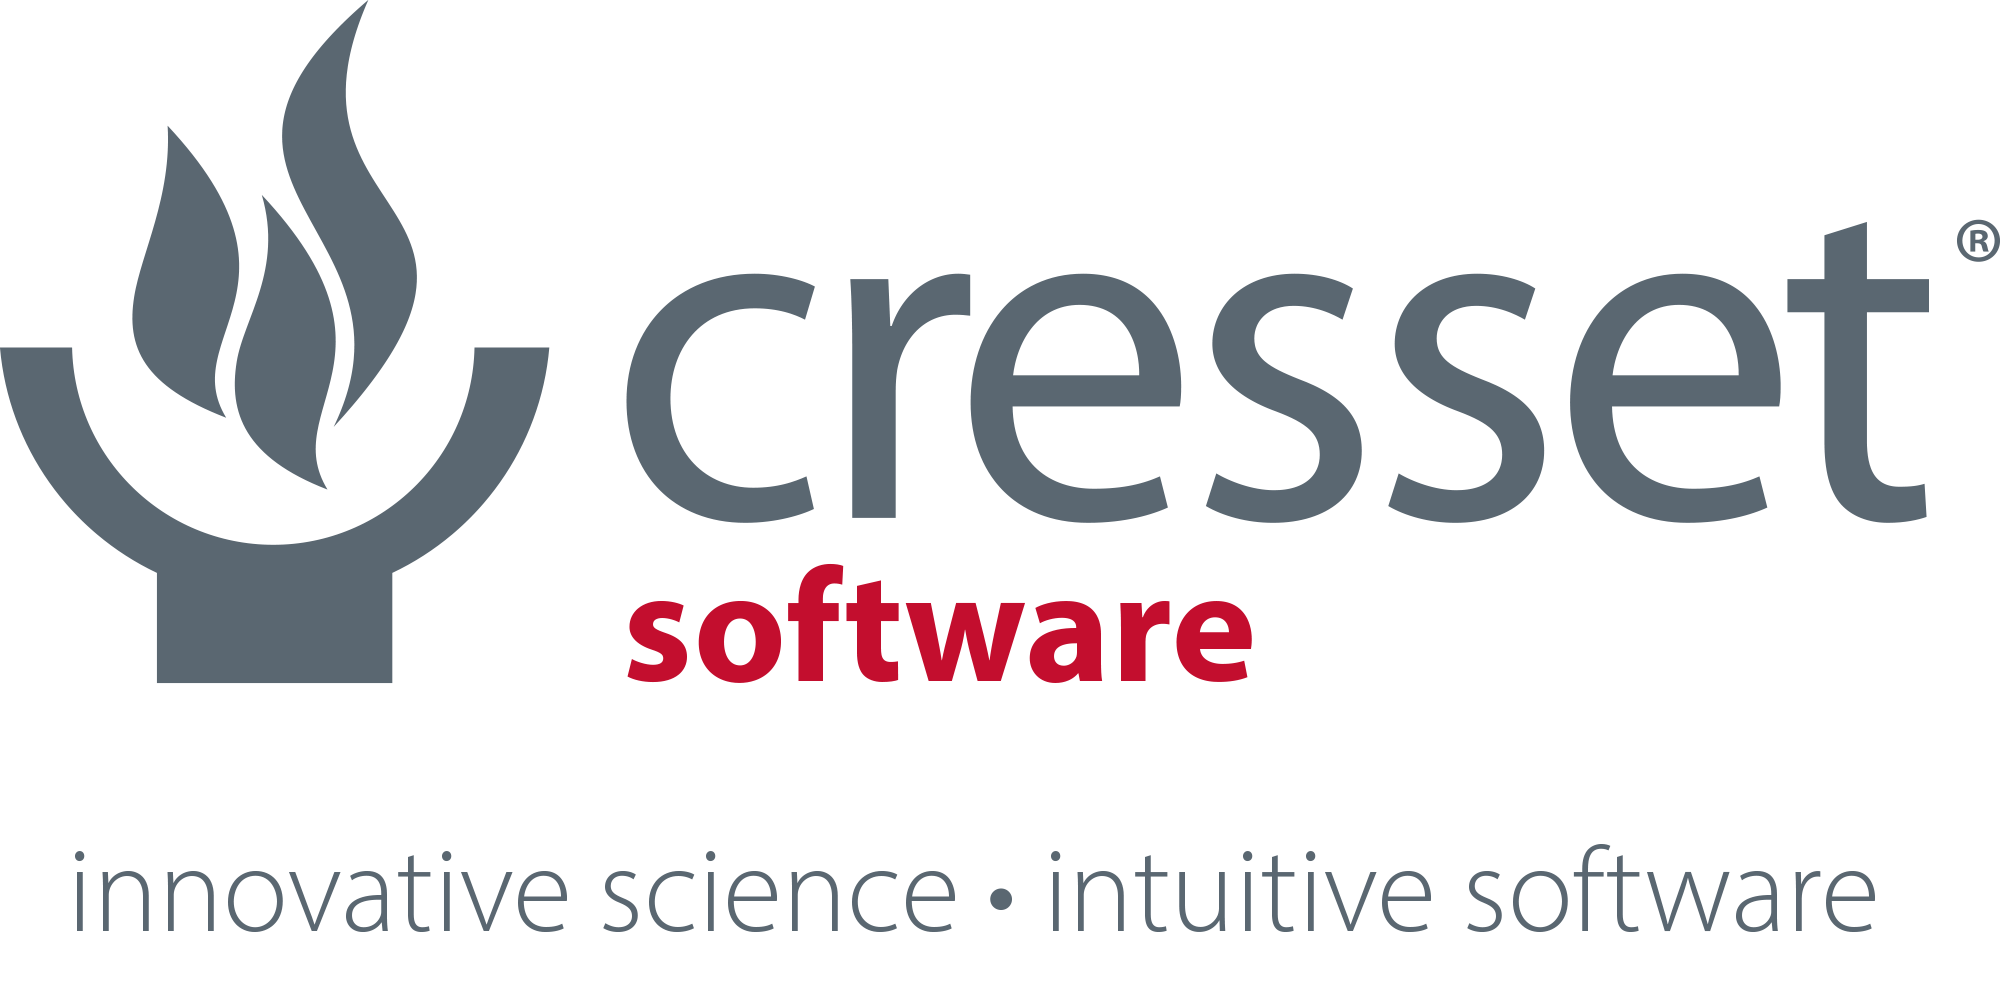 Cresset Software logo